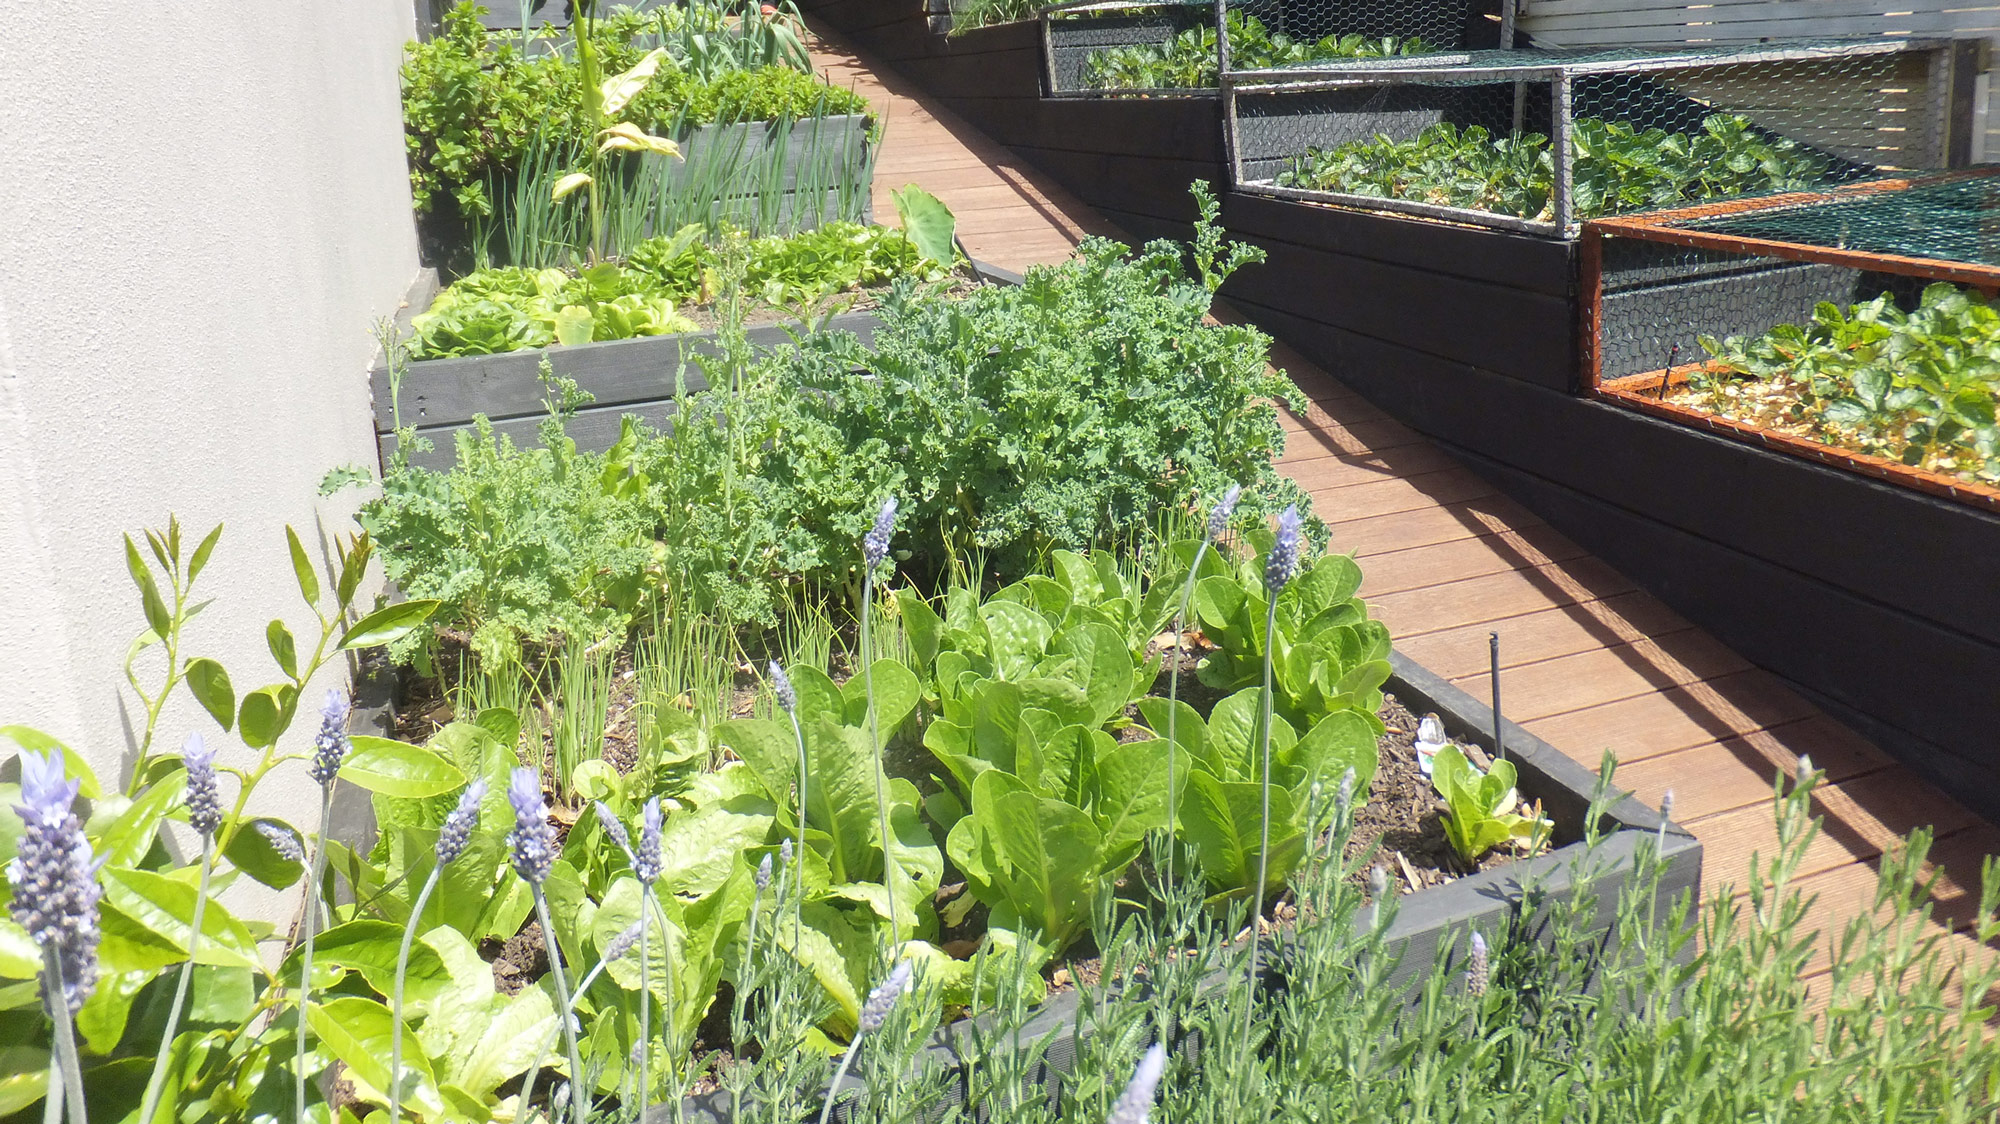 Microclimates in the Garden